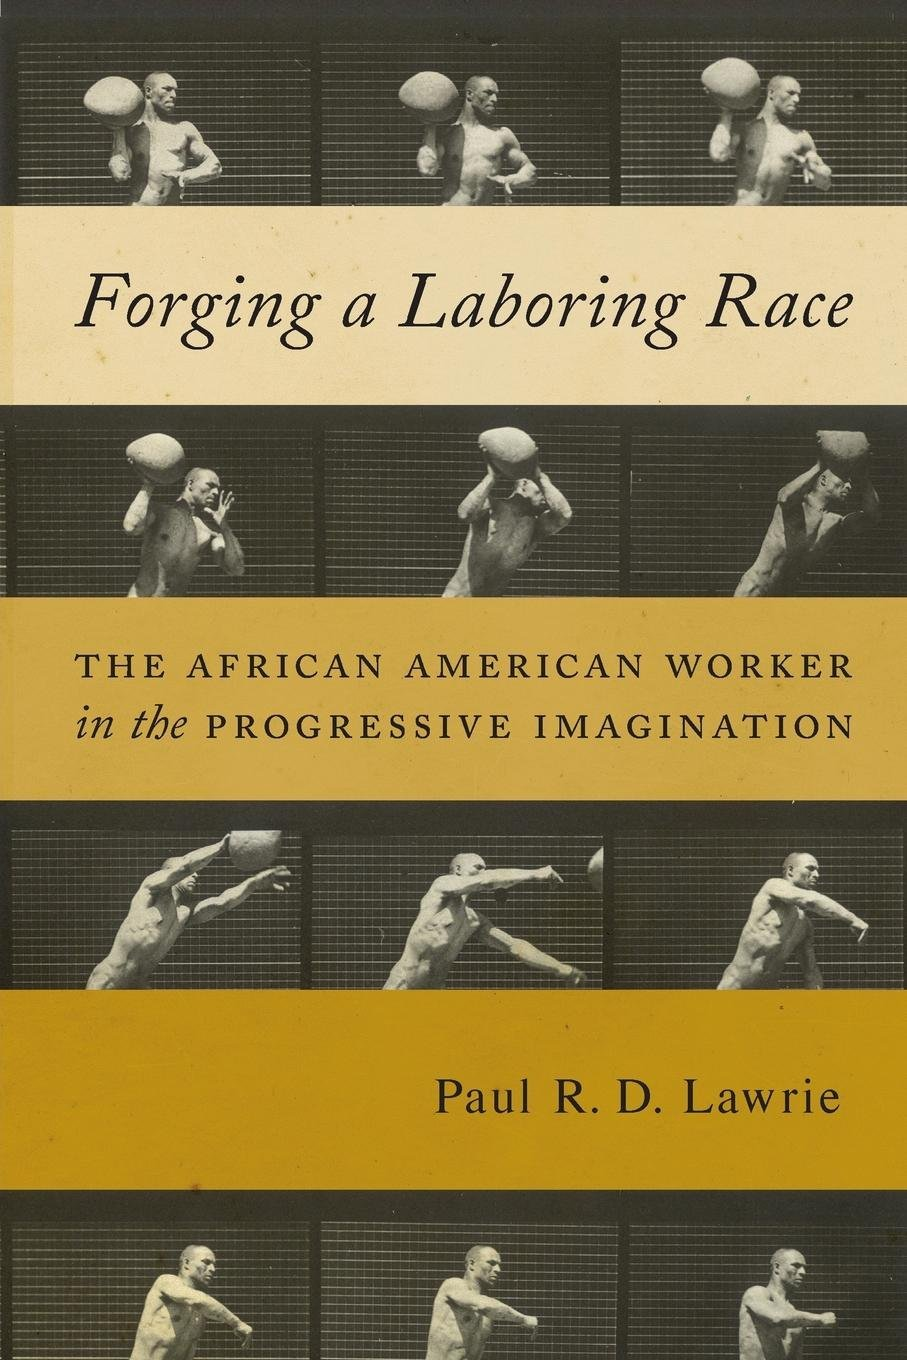 Forging a Laboring Race: The African American Worker in the Progressive Imagination (Culture, Labor, History) PDF